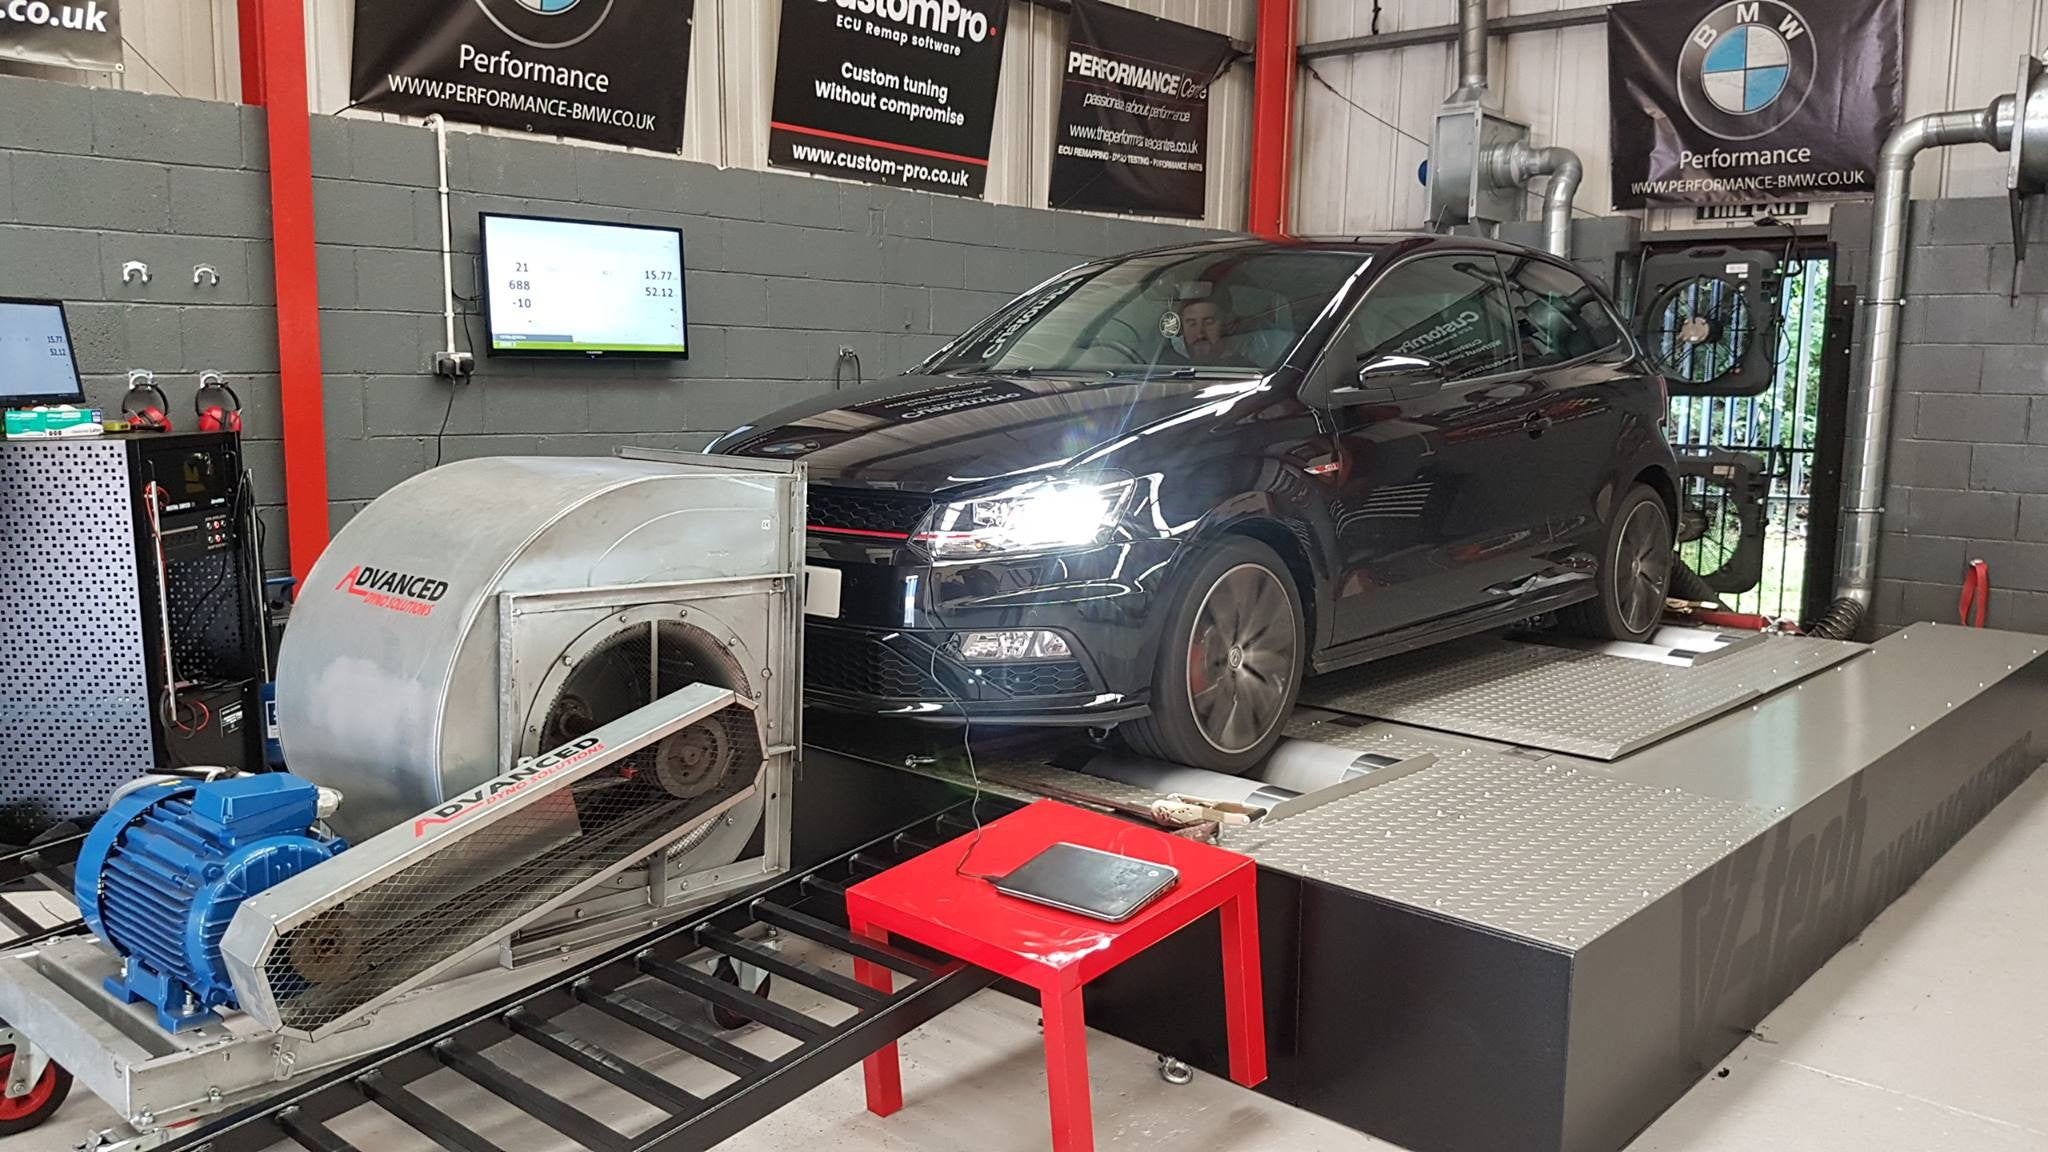 Volkswagen Polo GTi 6c - Airtec intercooler and JB4